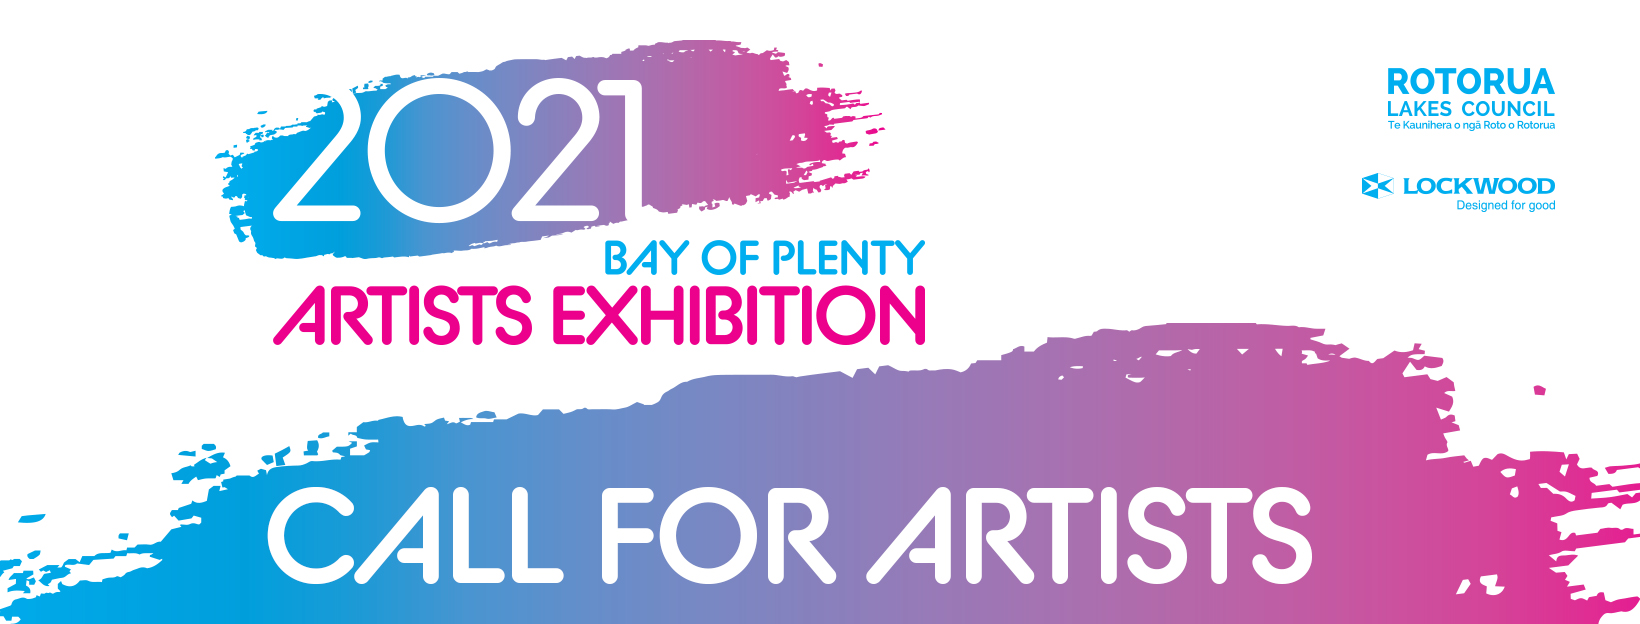 Bay-of-Plenty-Artists-Exhibition-Facebook-cover-CALL-1640-x-624 Home